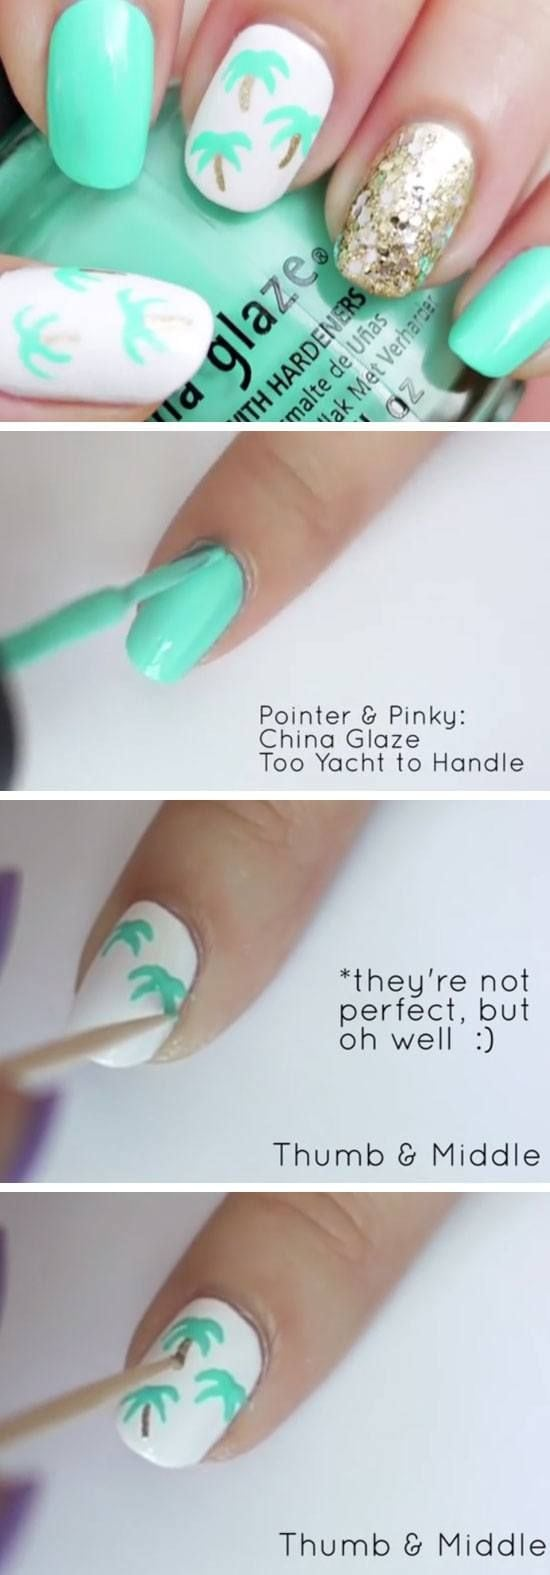 Easy Palm Tree Nail Art | 18 Easy Summer Nails Designs for Summer | Cute Nail Art Ideas for Teens Source by qh75   …